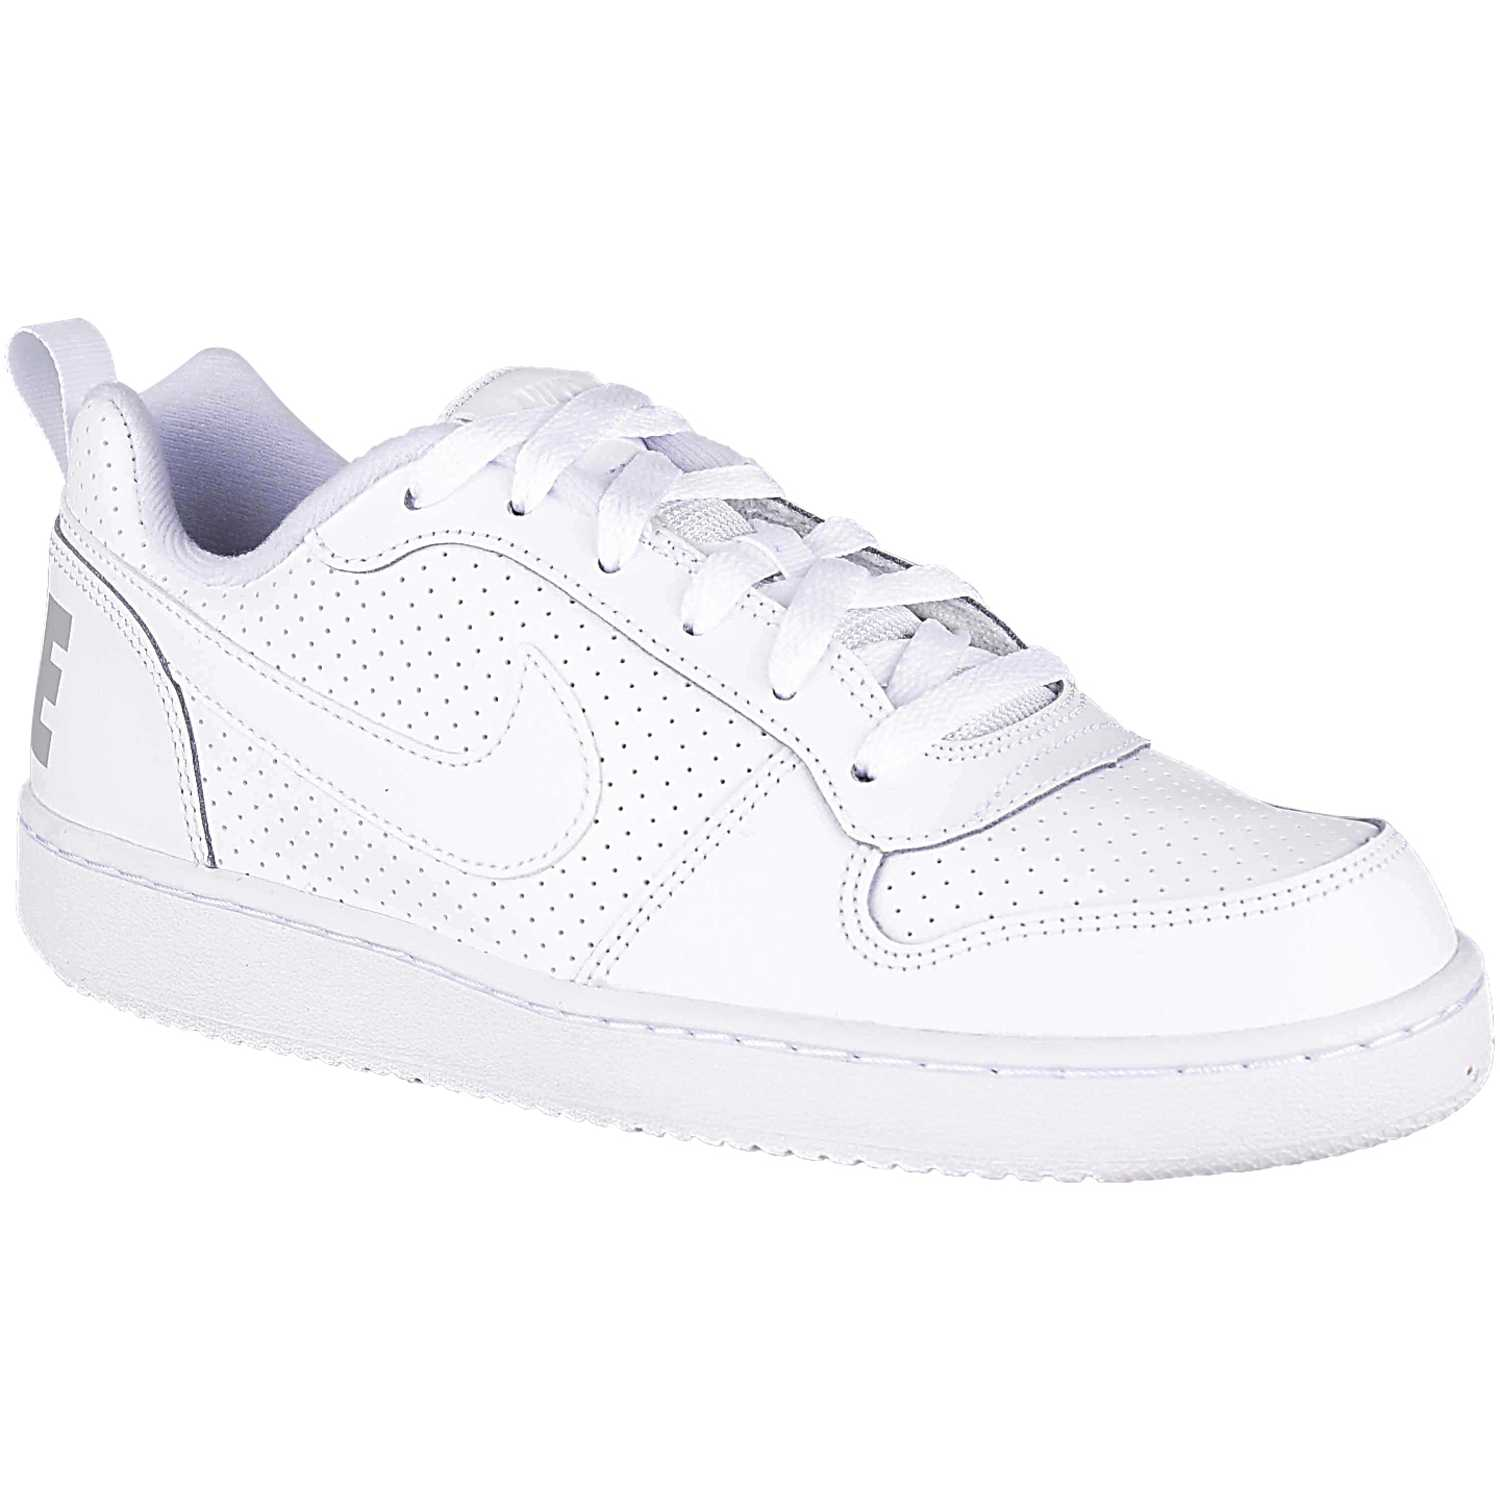 Nike NIKE COURT BOROUGH LOW BG BLANCO / BLANCO Walking